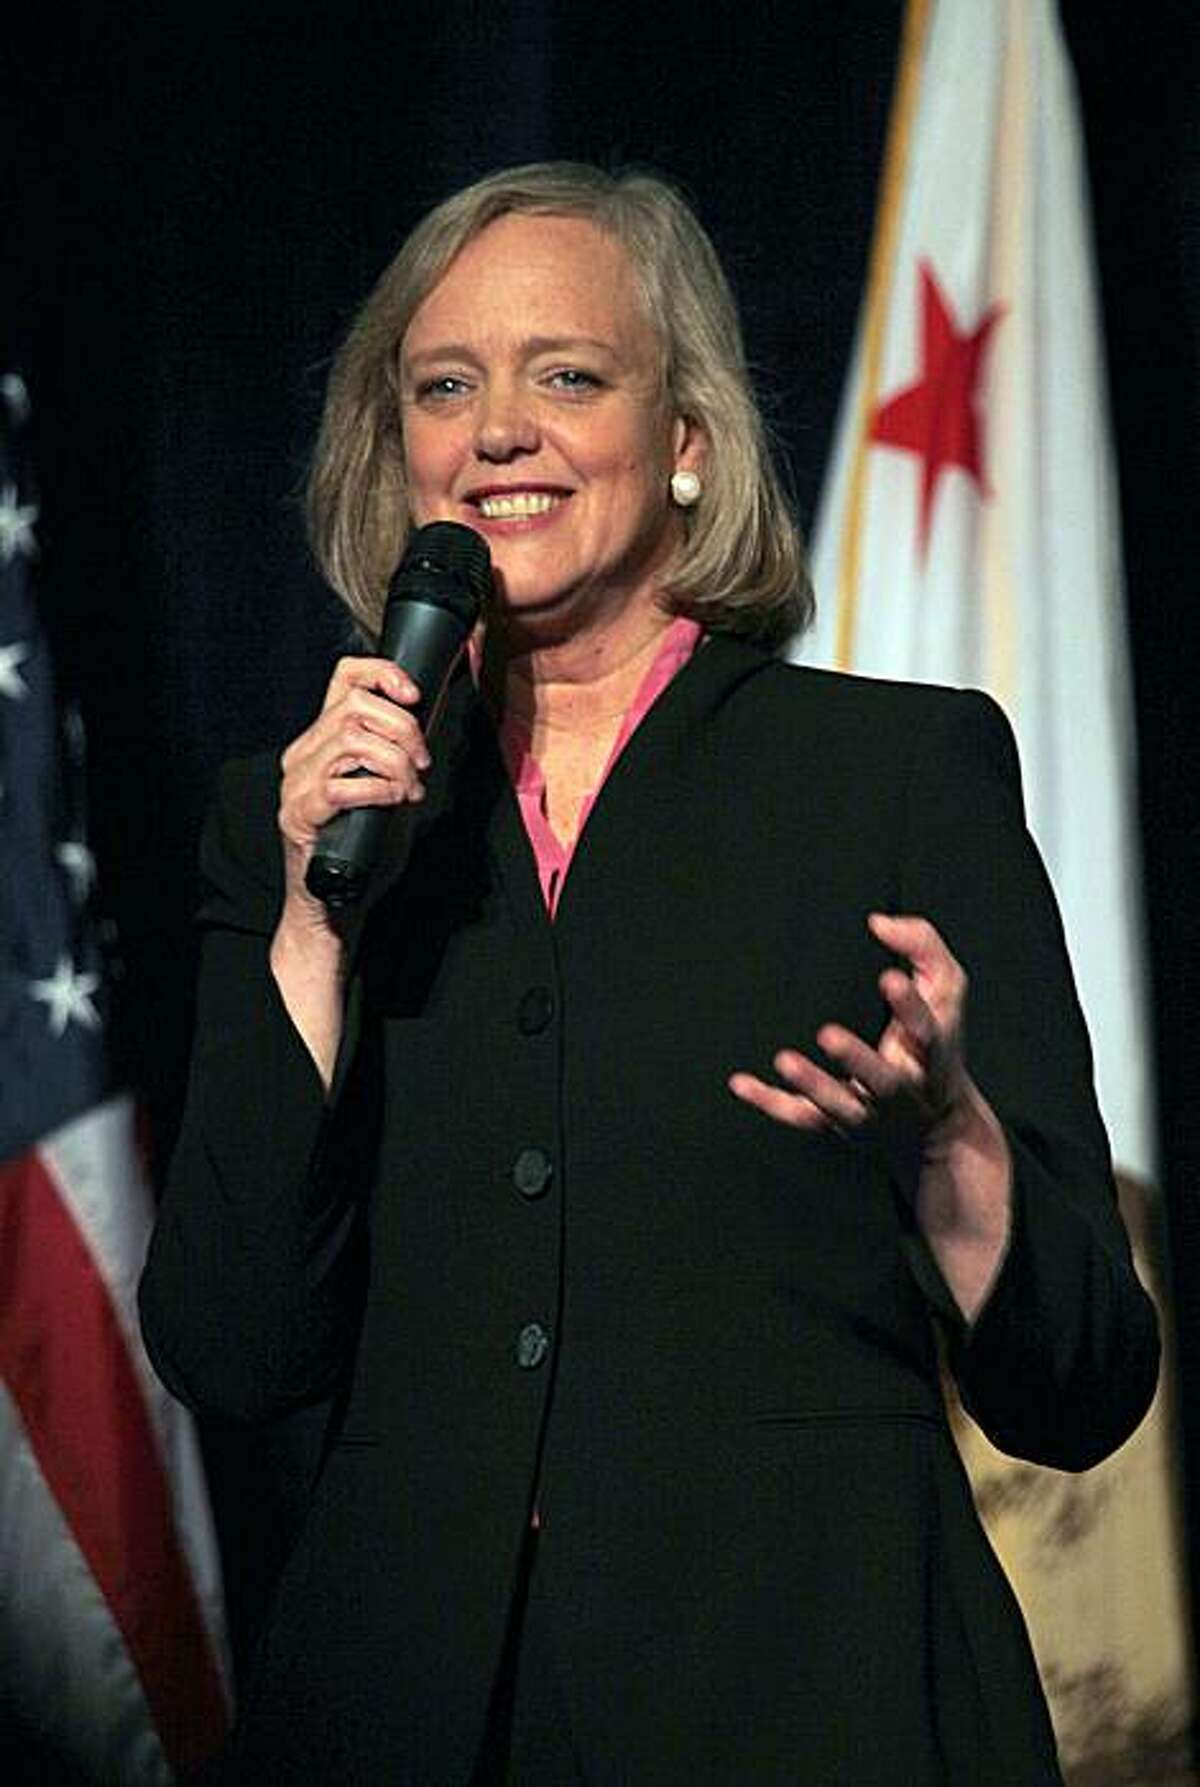 Gubernatorial candidate Meg Whitman speaks at the banquet of the California Republican Party 2010 Spring Convention in the Santa Clara Hyatt Regency and Convention Center in Santa Clara, Ca., on Friday, March 12, 2010.